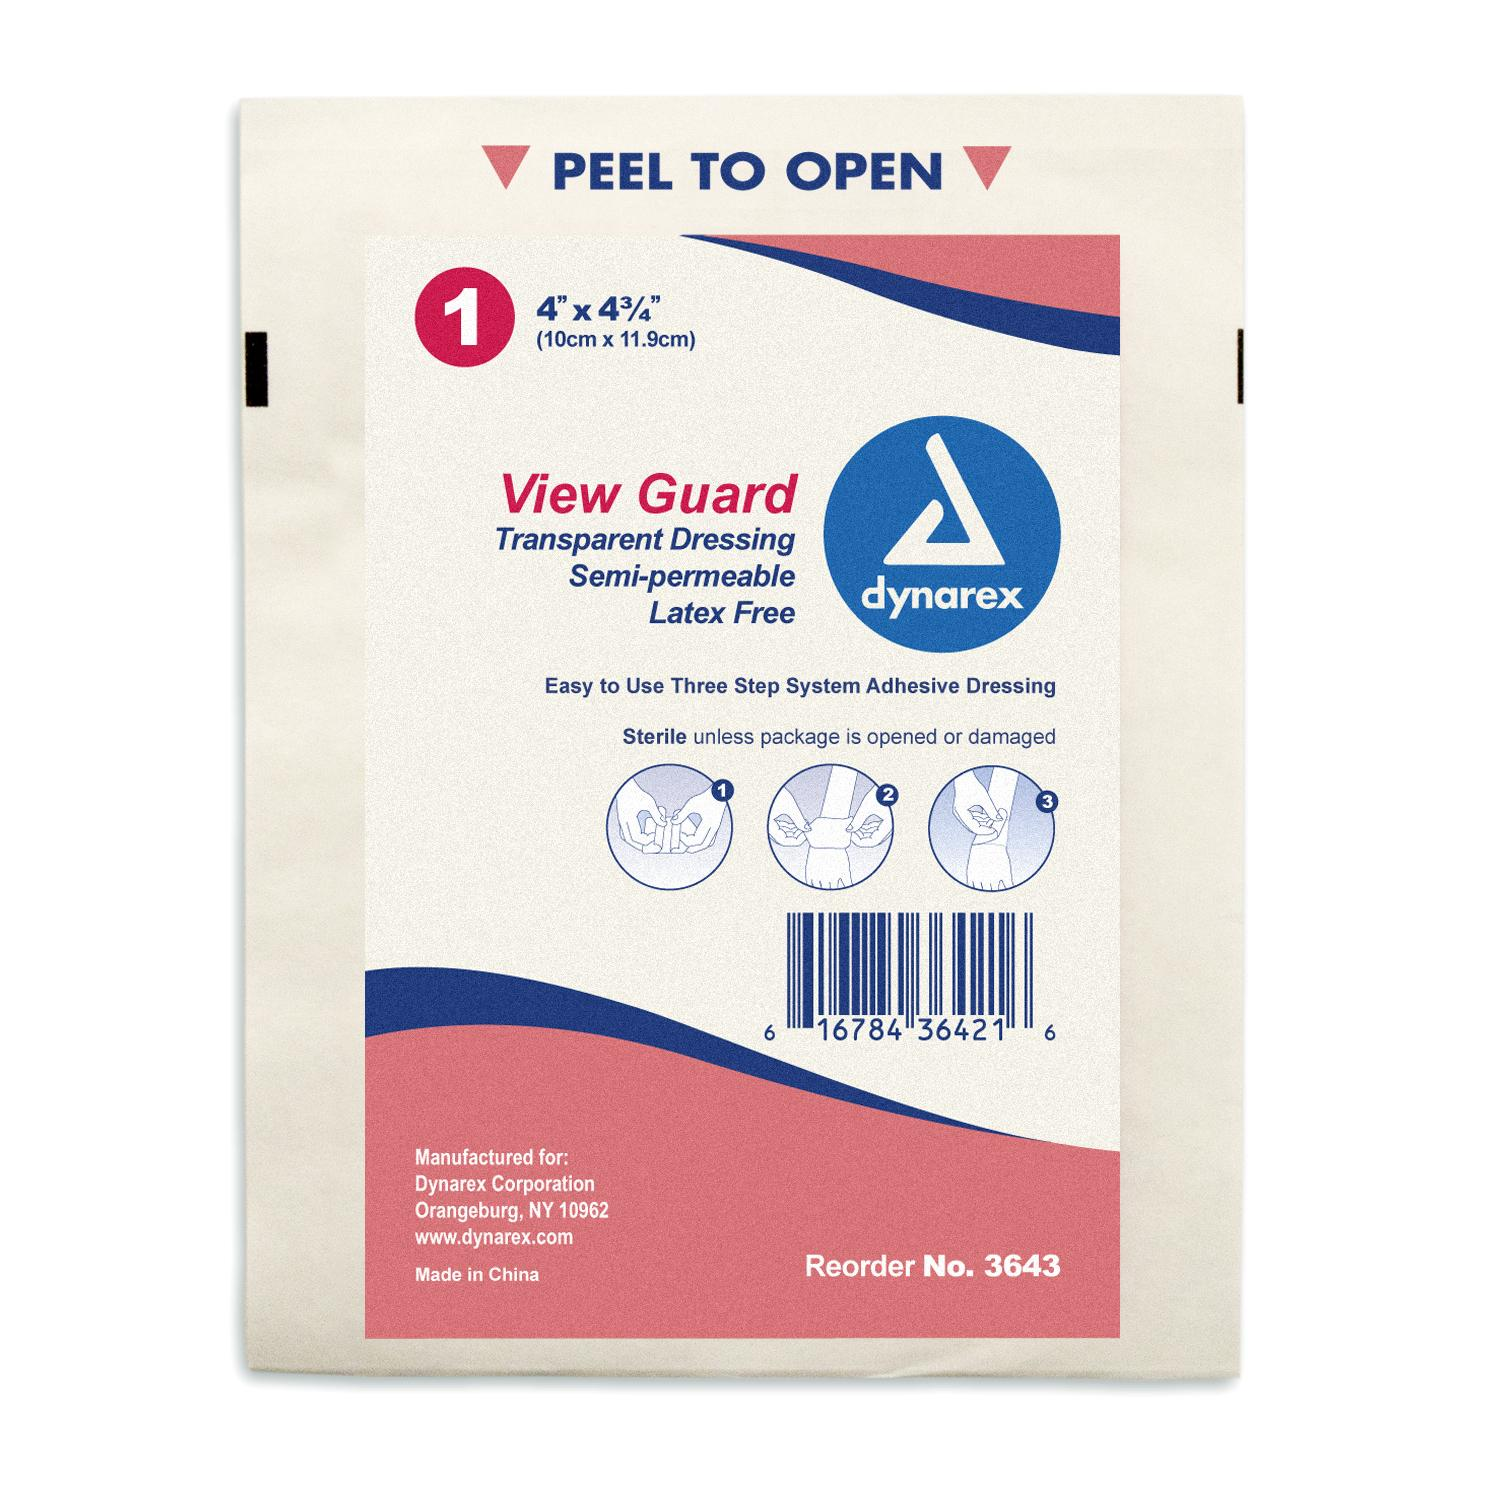 View Guard Transparent Dressing 4